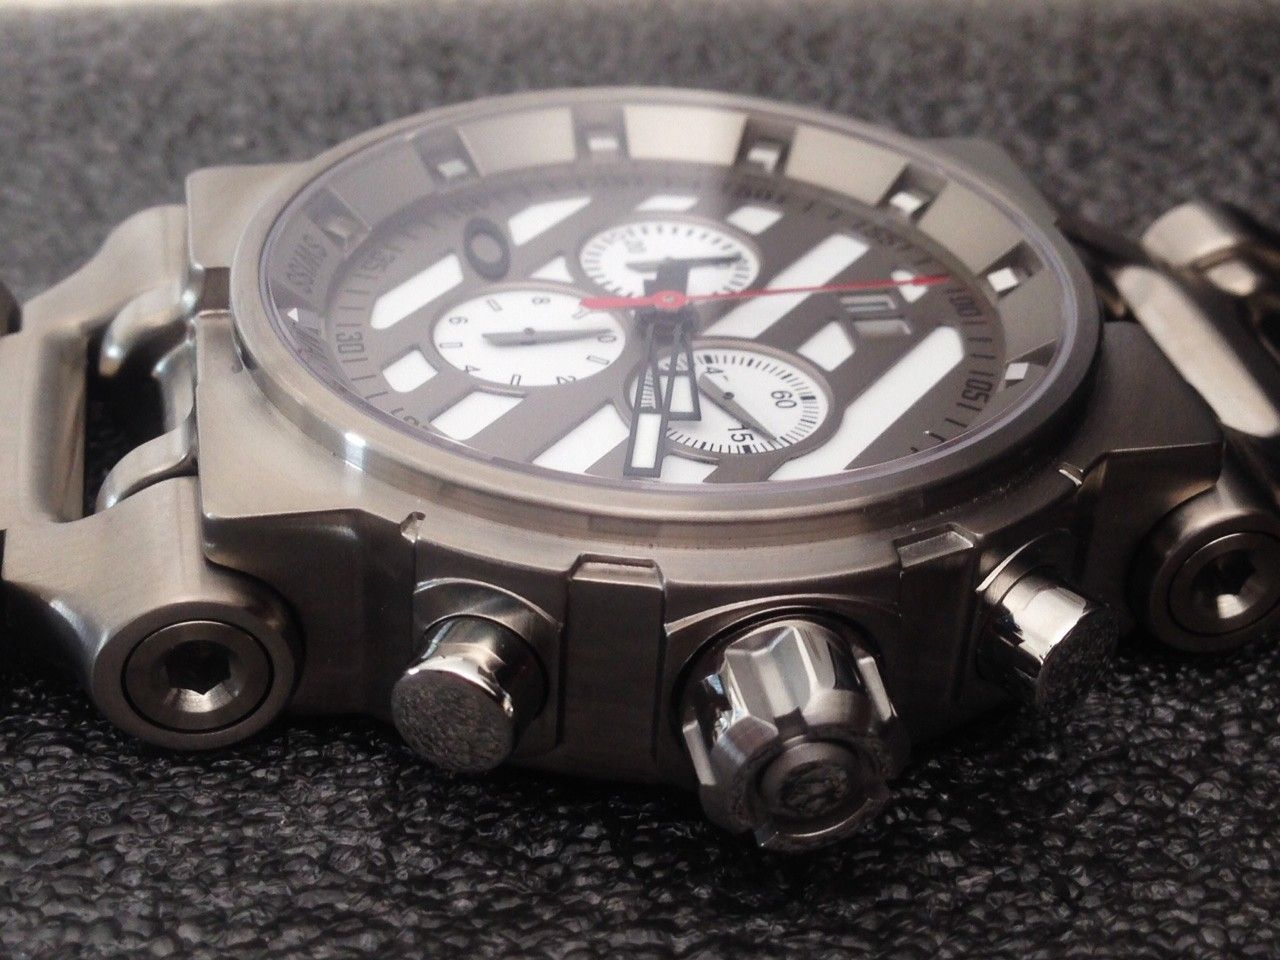 NEW IN BOX Oakley Hollow Point Titanium Watch White Dial 10-046 - 5.JPG